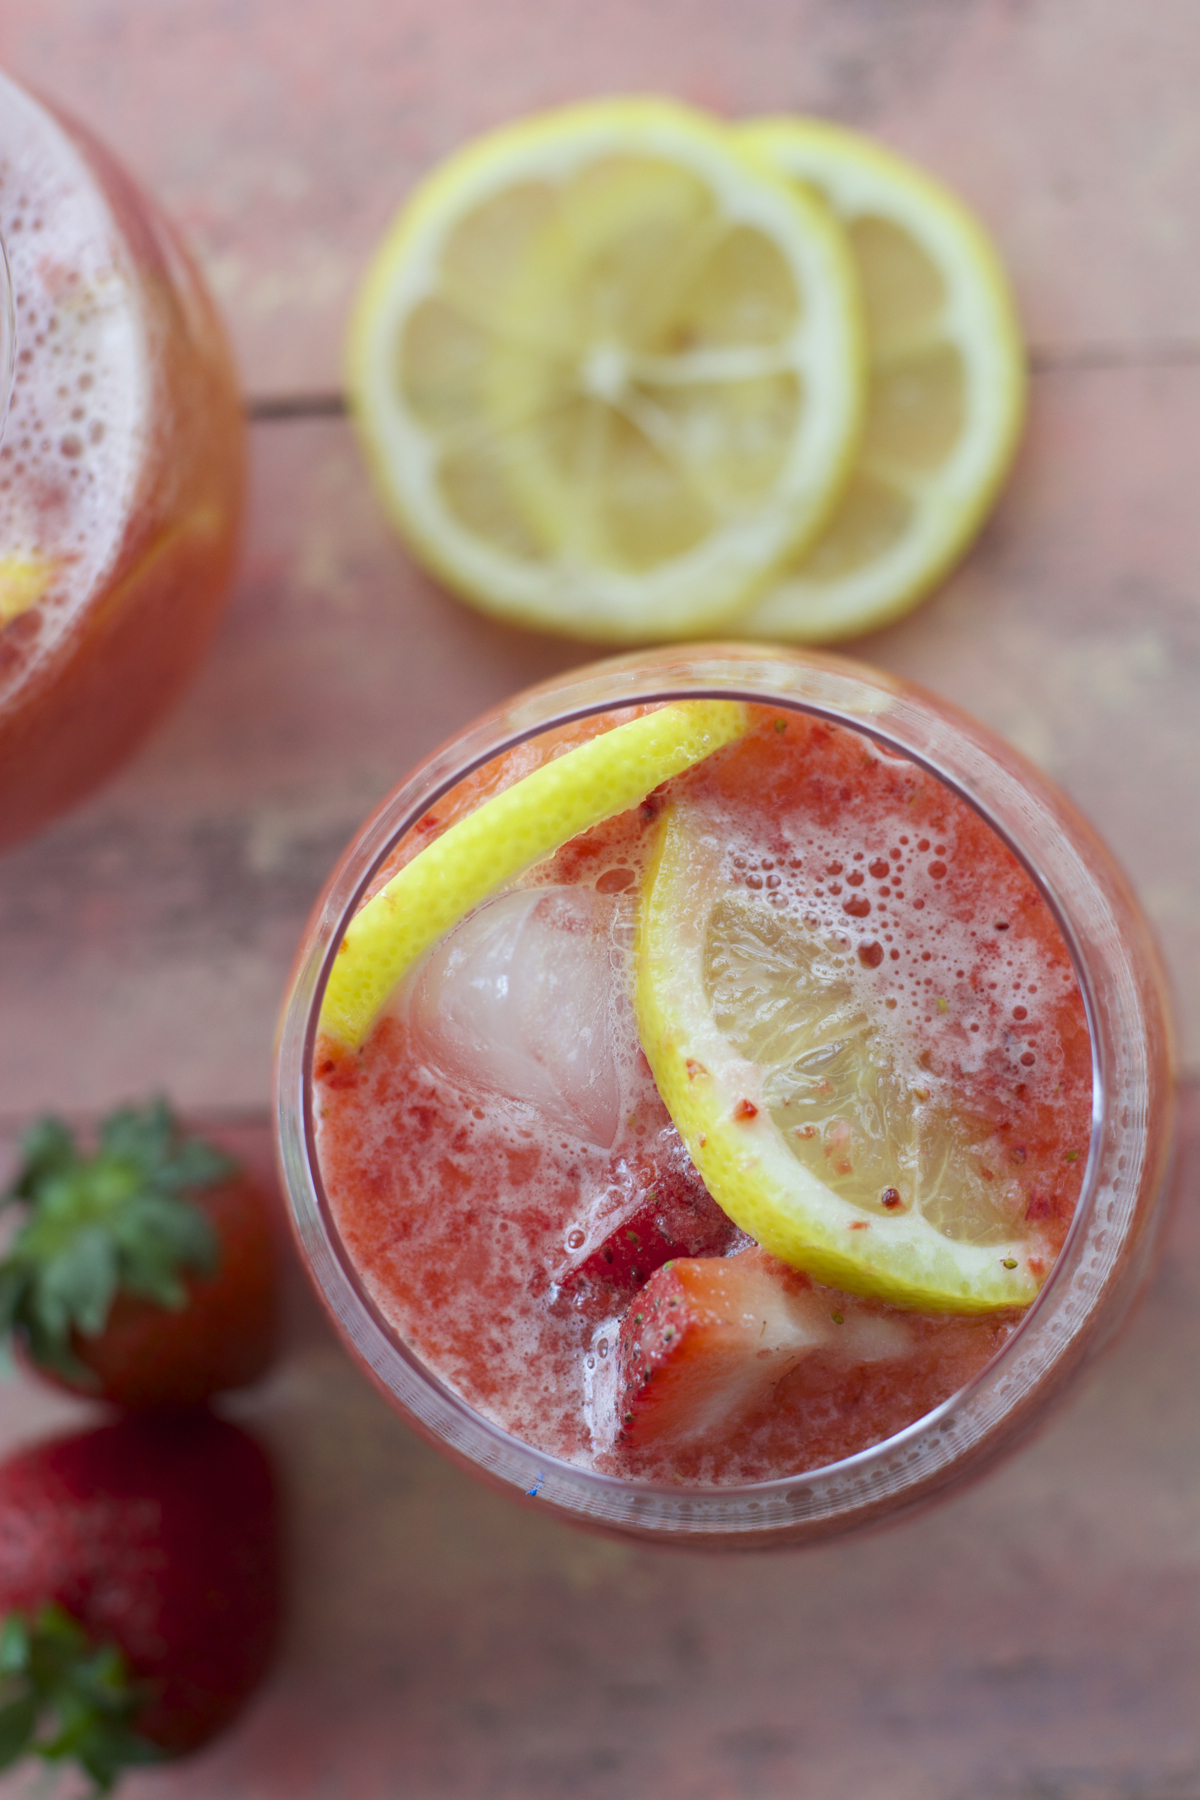 overhead view of a glass of homemade strawberry lemonade